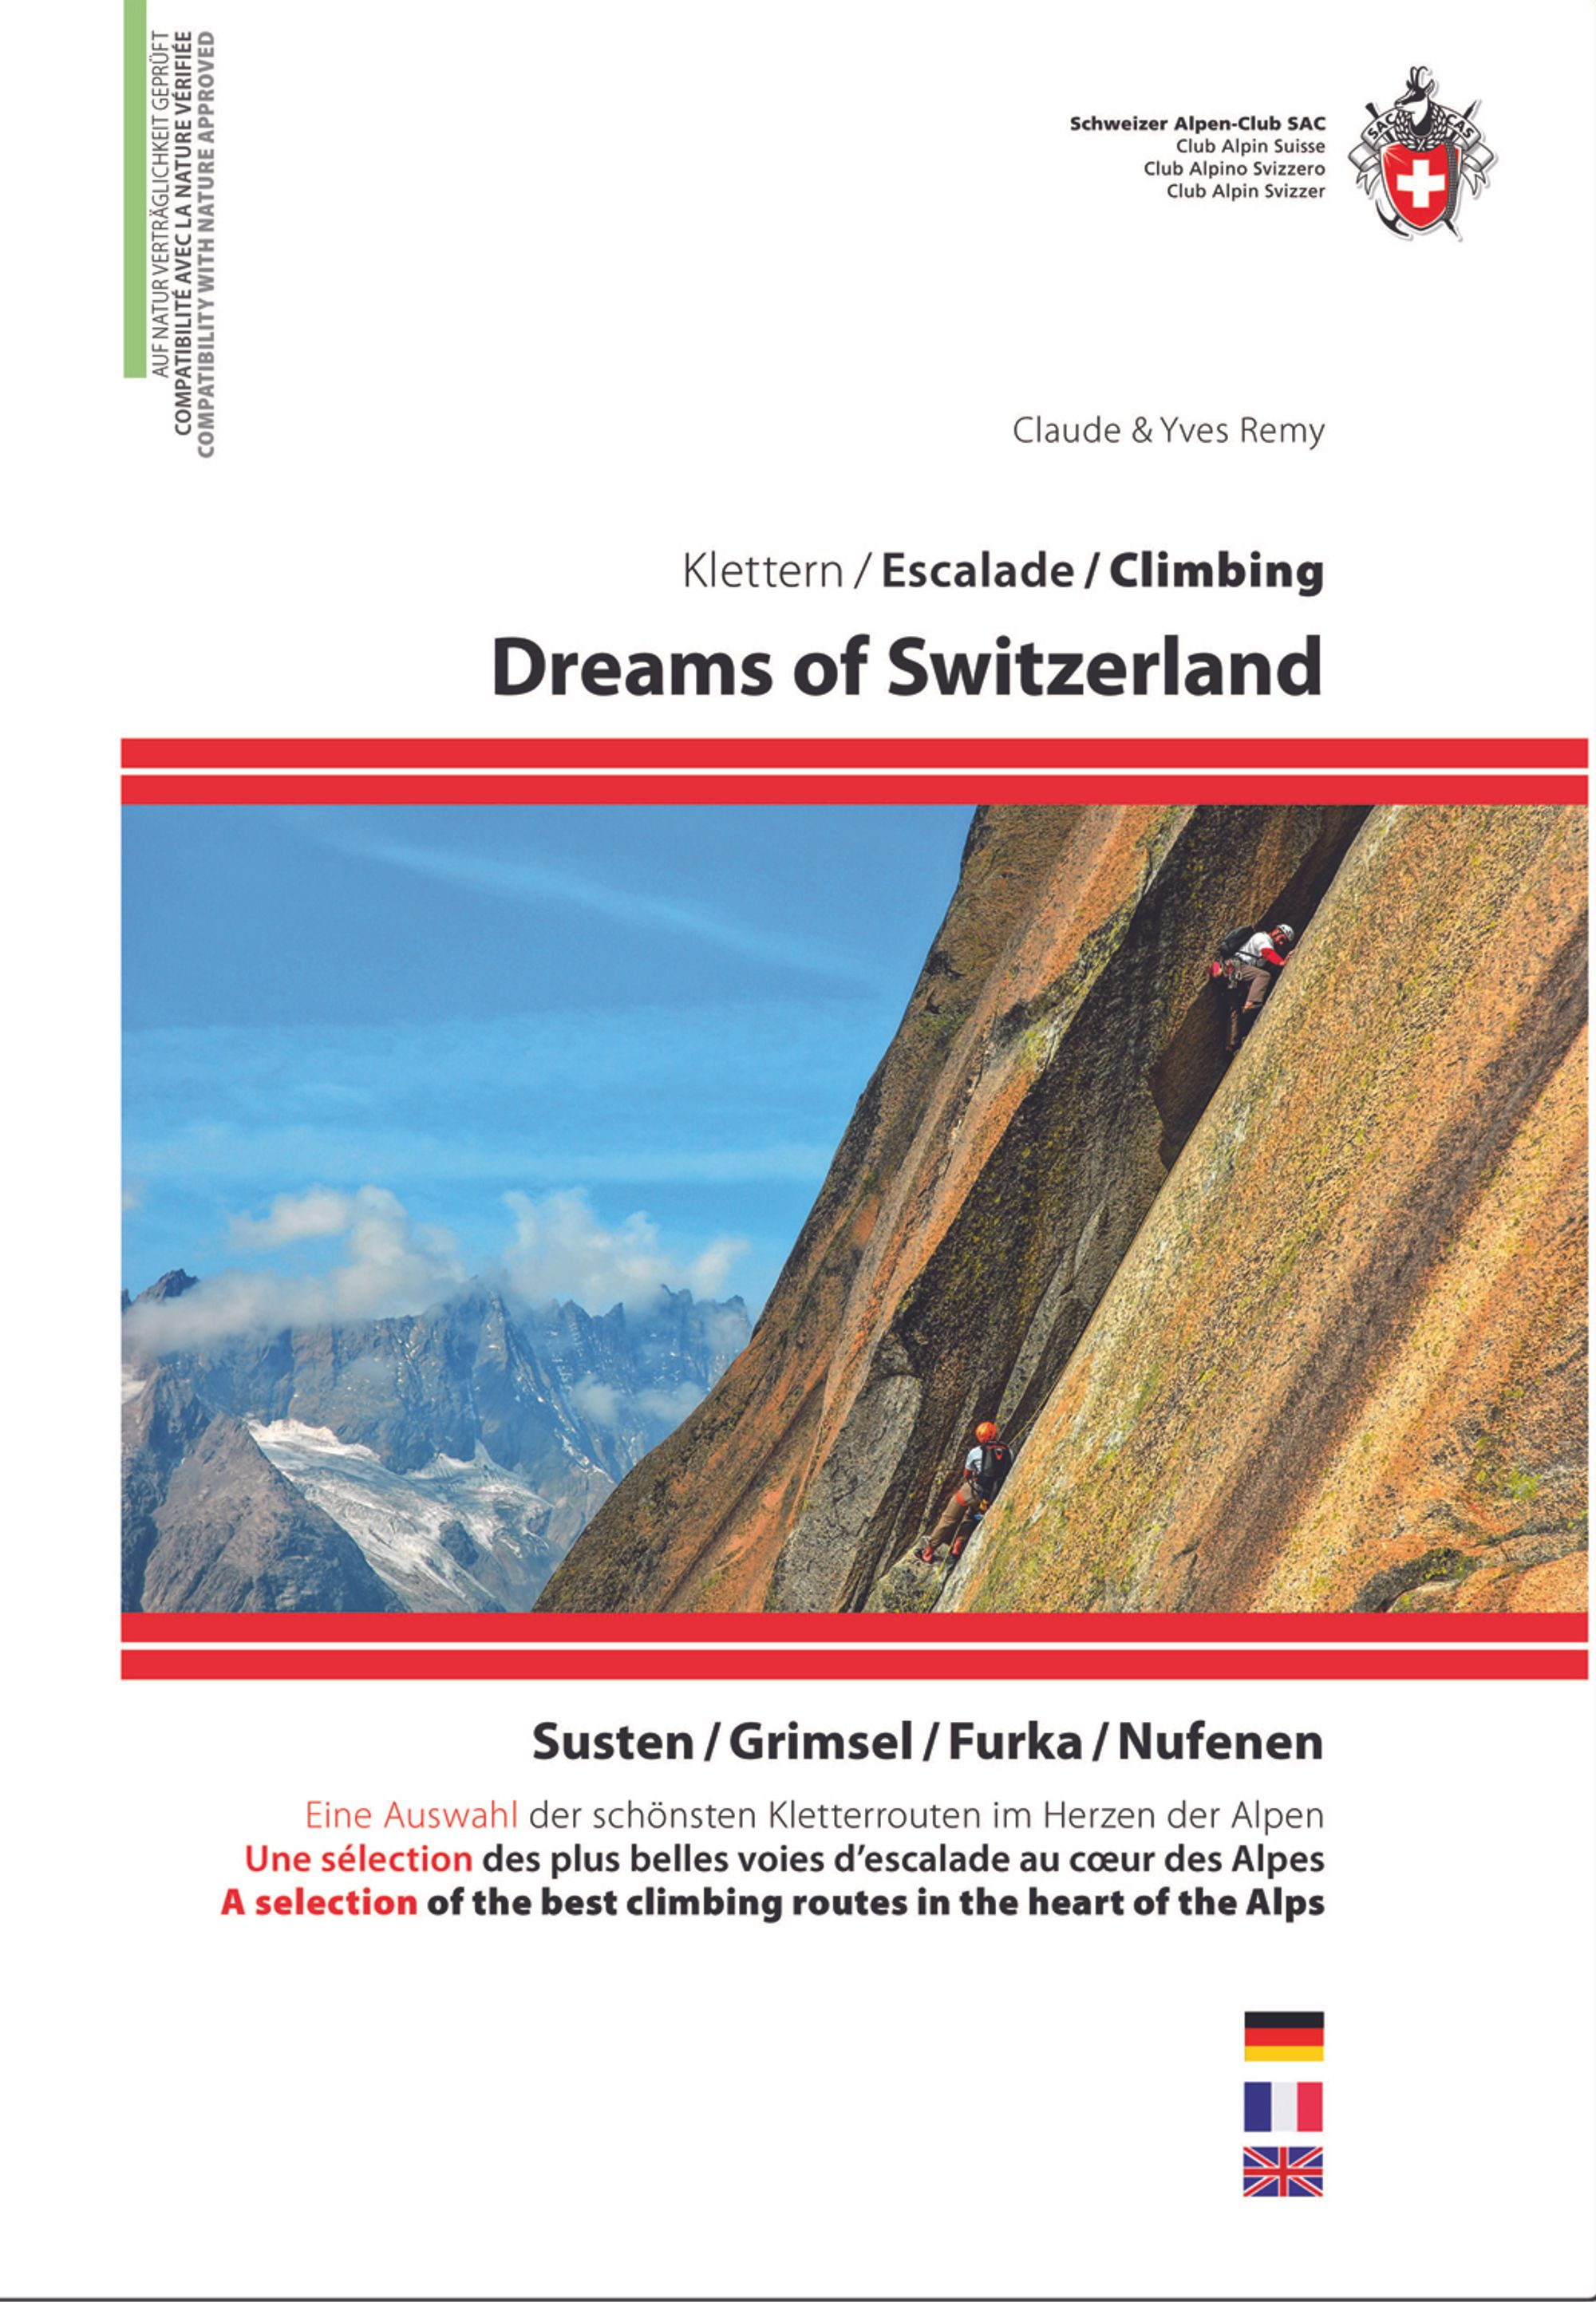 «Dreams of Switzerland: Susten/Grimsel/Furka/Nufenen»